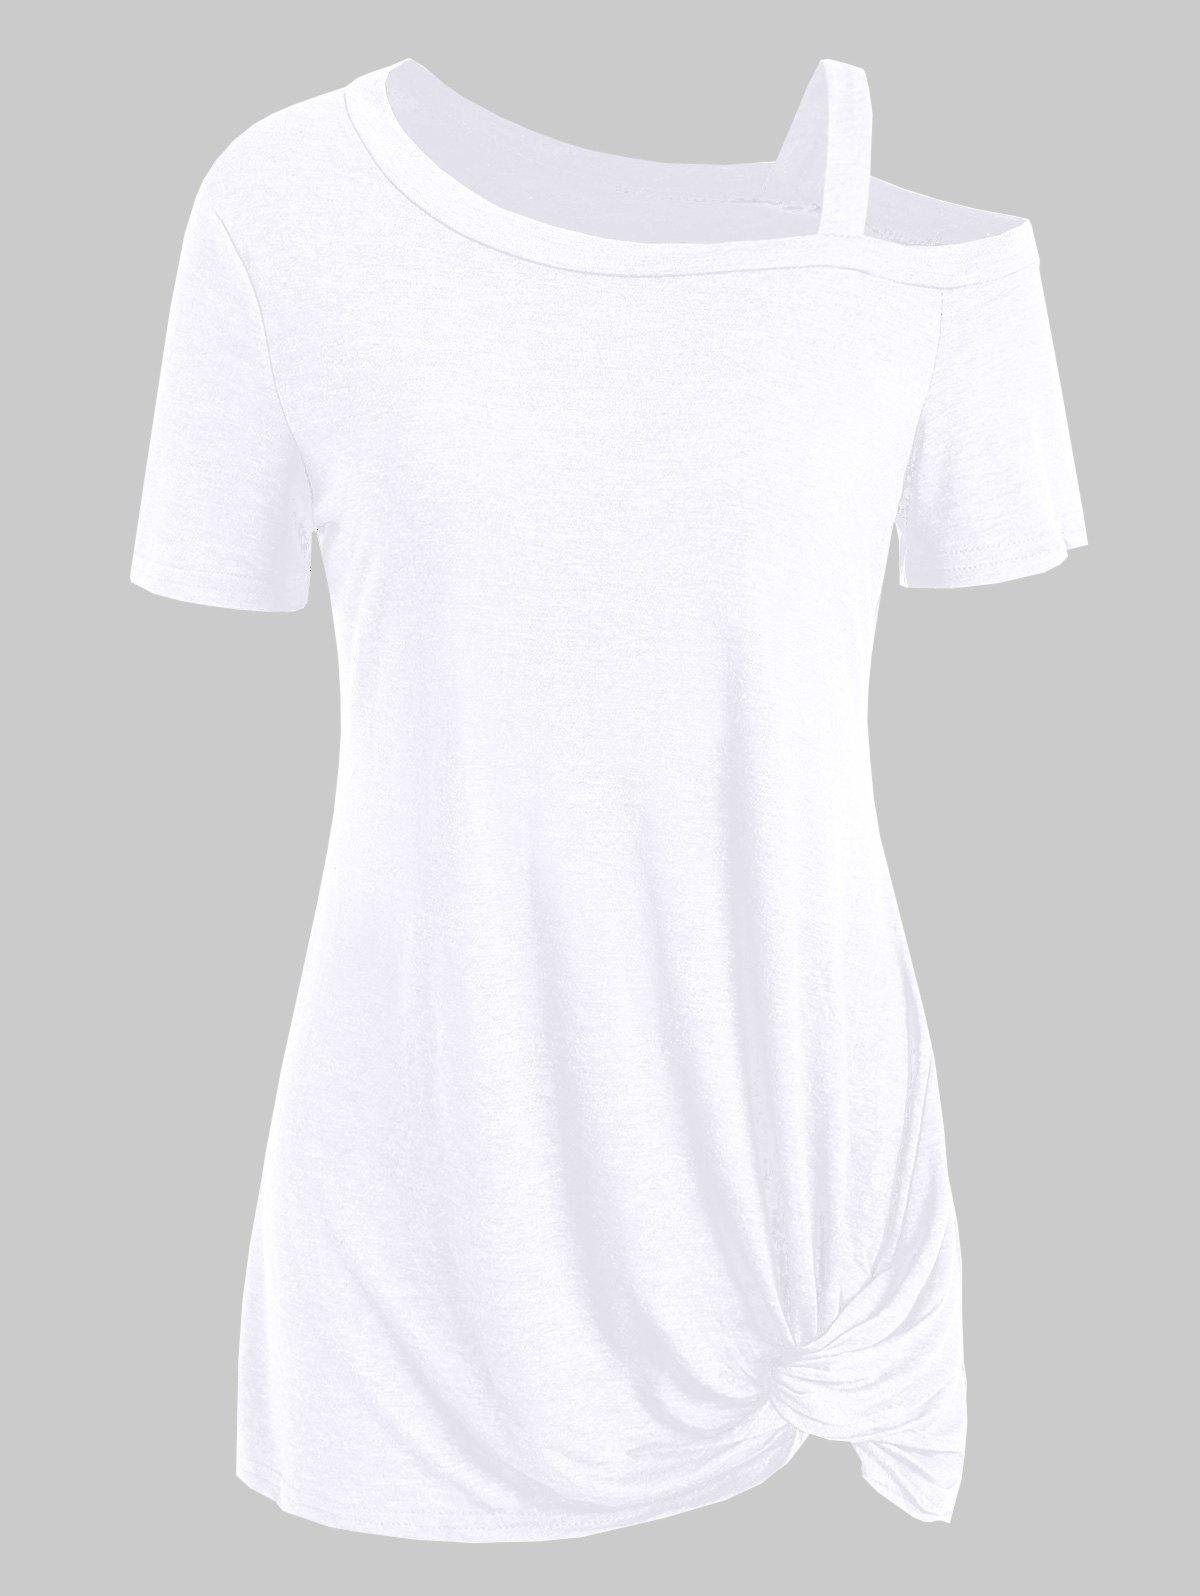 Online Knotted Skew Neck Short Sleeve Tee